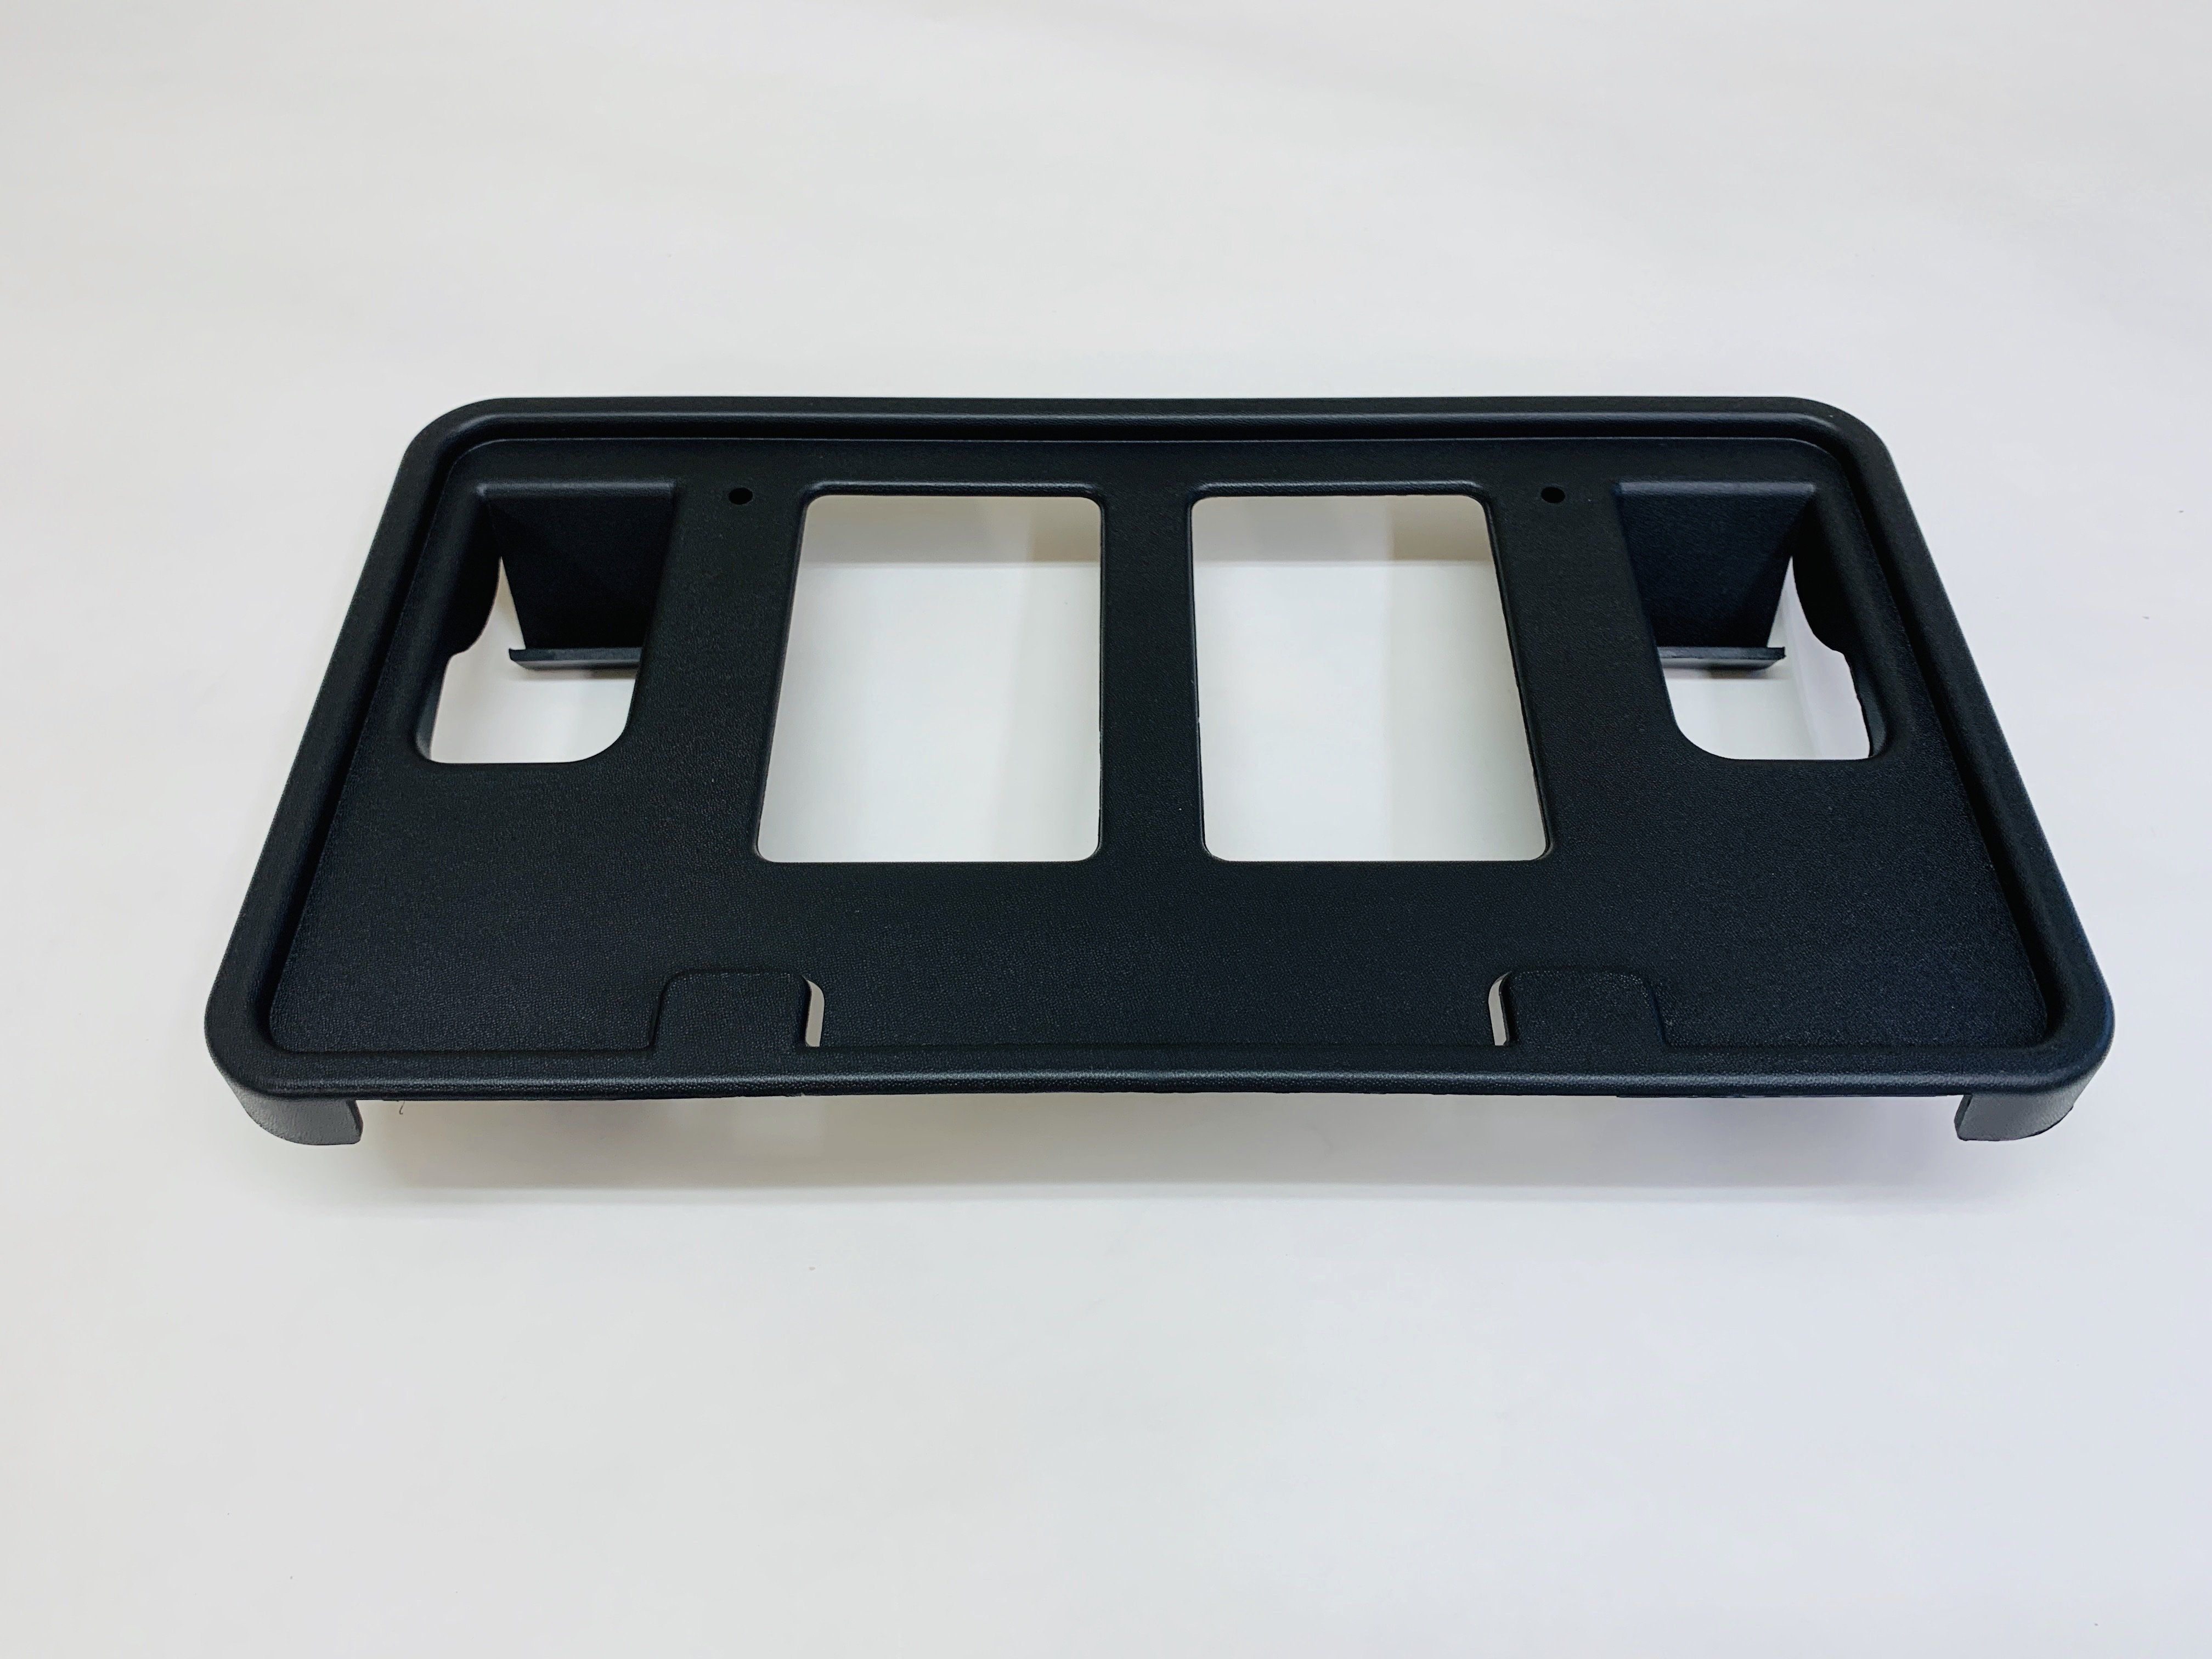 2006 2007 Ford F 150 Front License Plate Bracket Genuine Oem New New Parts Auto Genuine Car Truck In 2020 Front License Plate Ford F150 License Plate